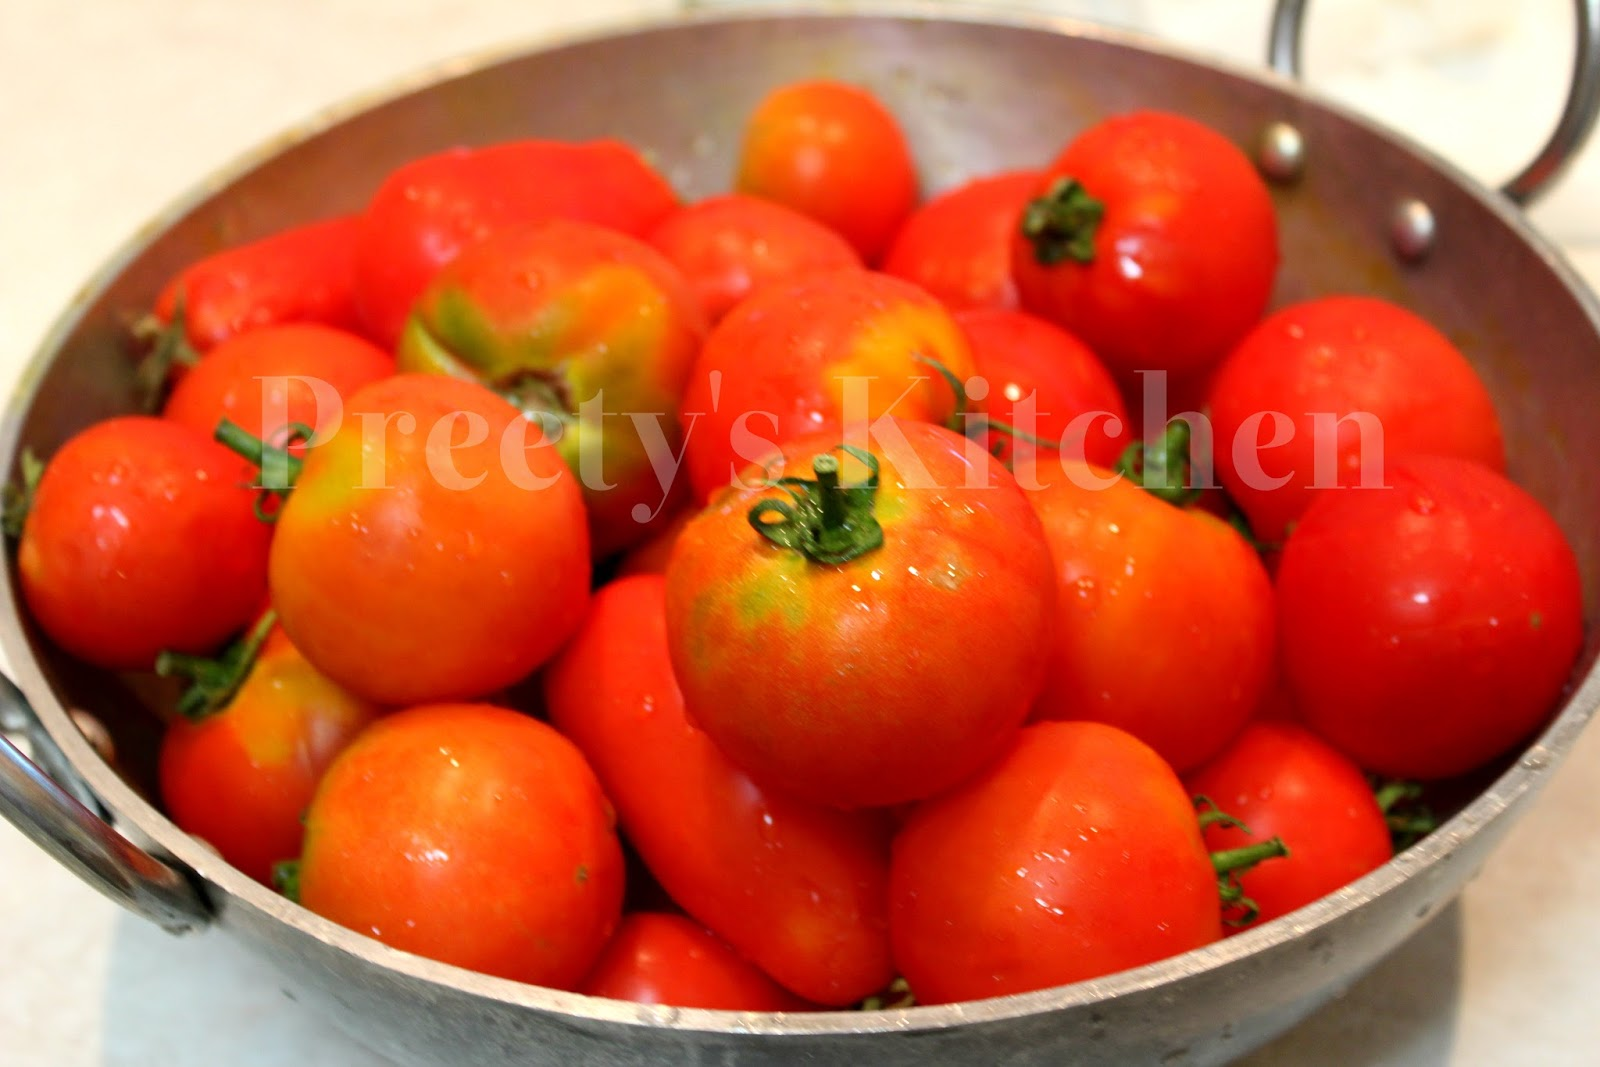 Watch How to Quickly Peel a Tomato video